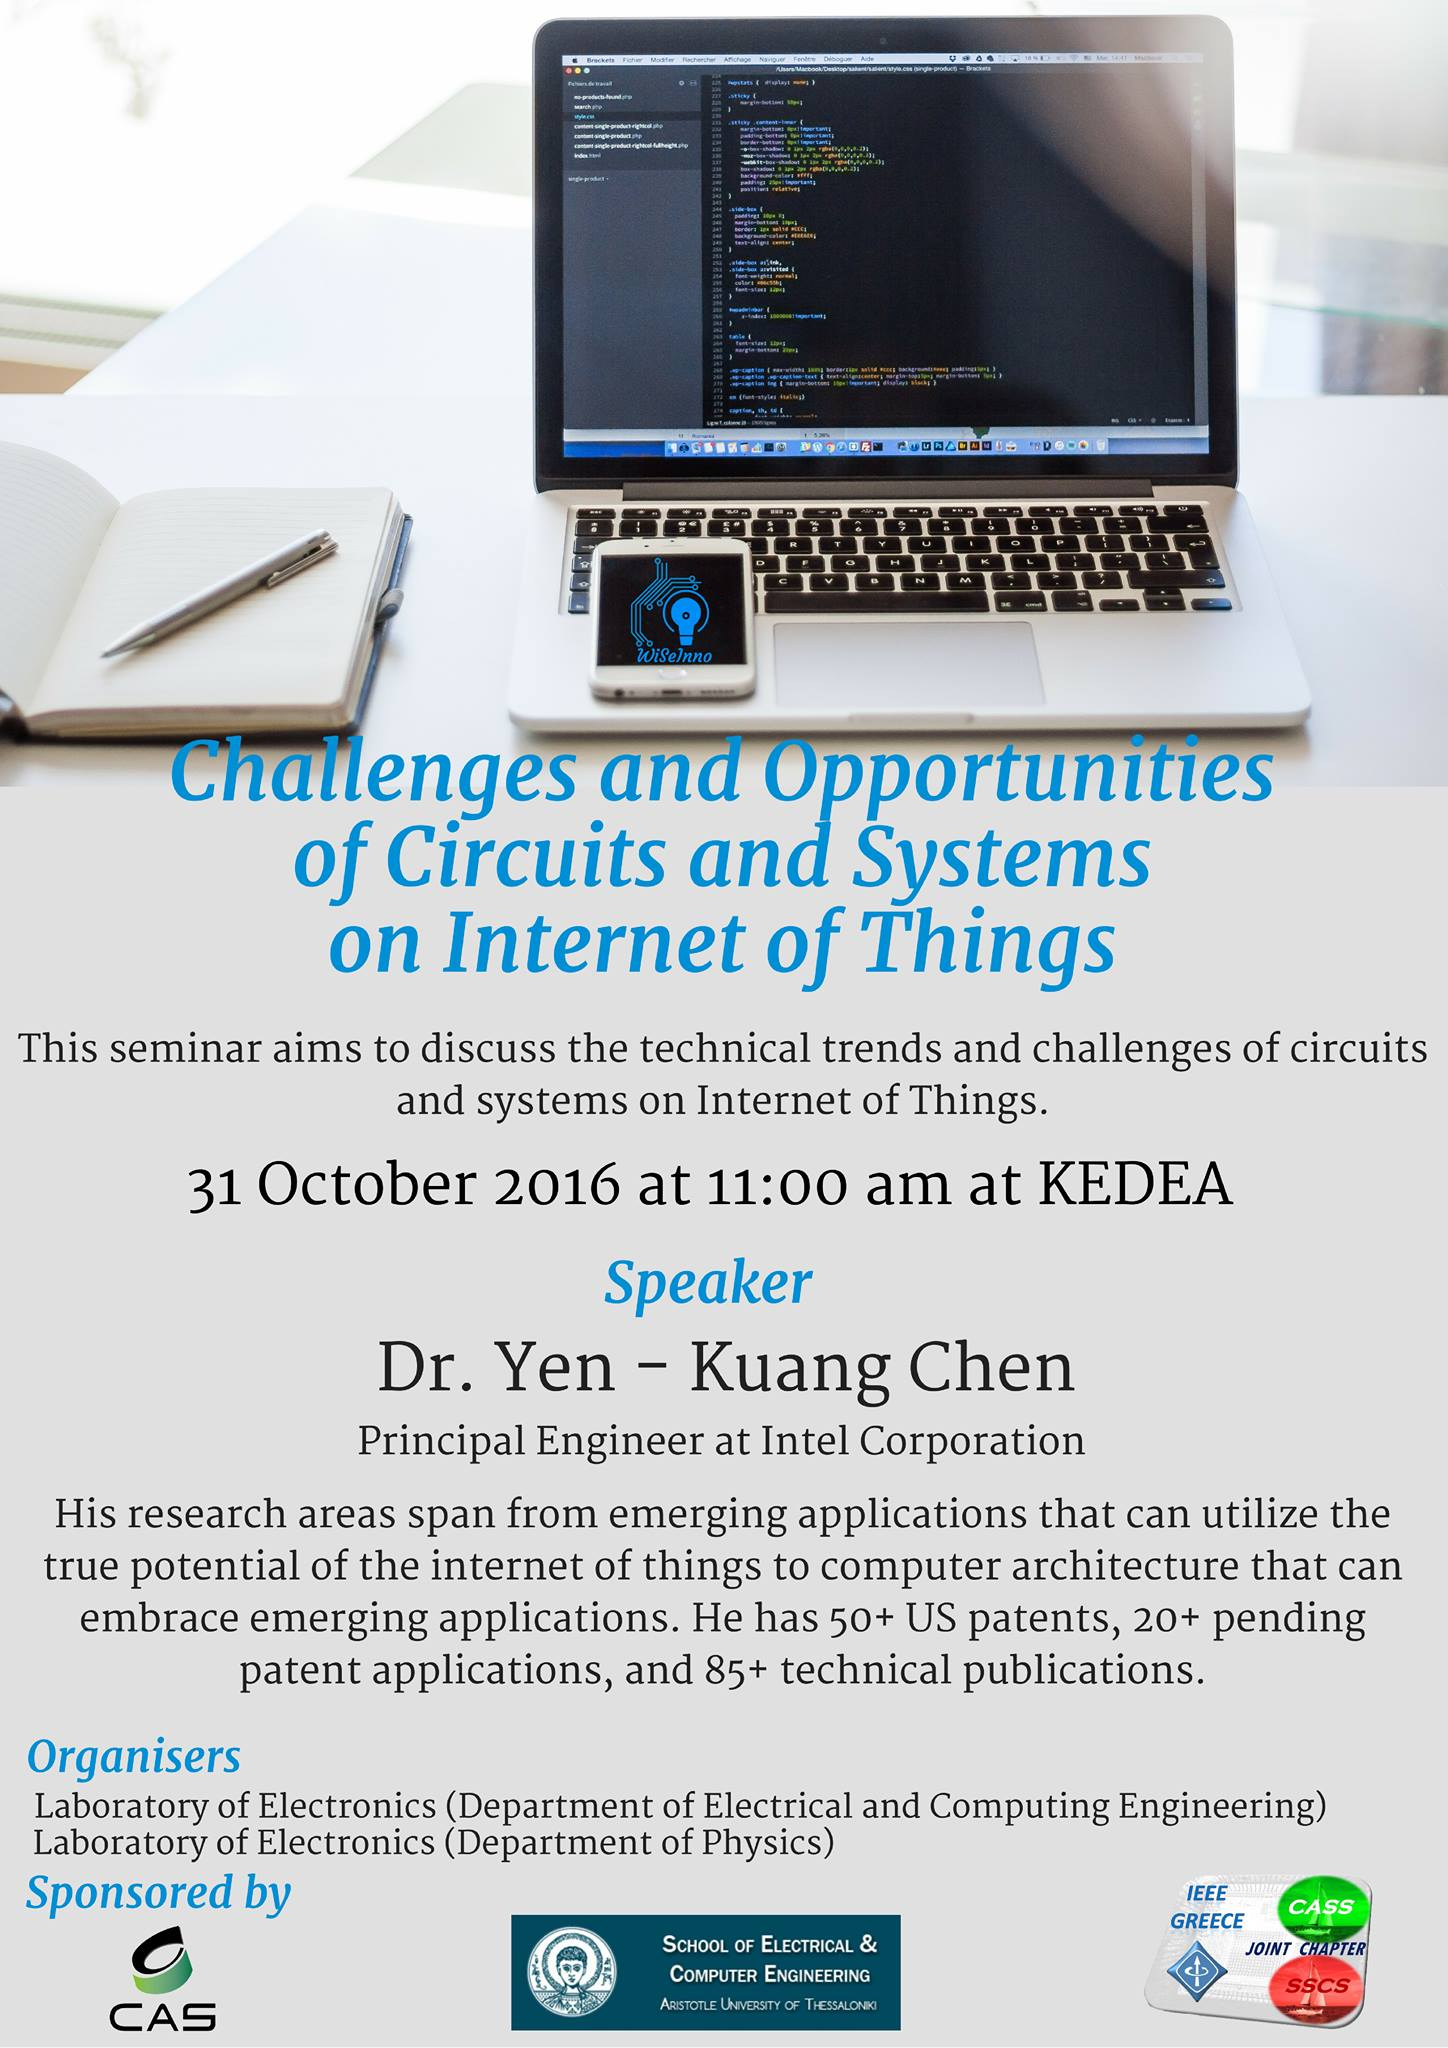 [CASS] Challenges and Opportunities of Circuits and Systems on IoT